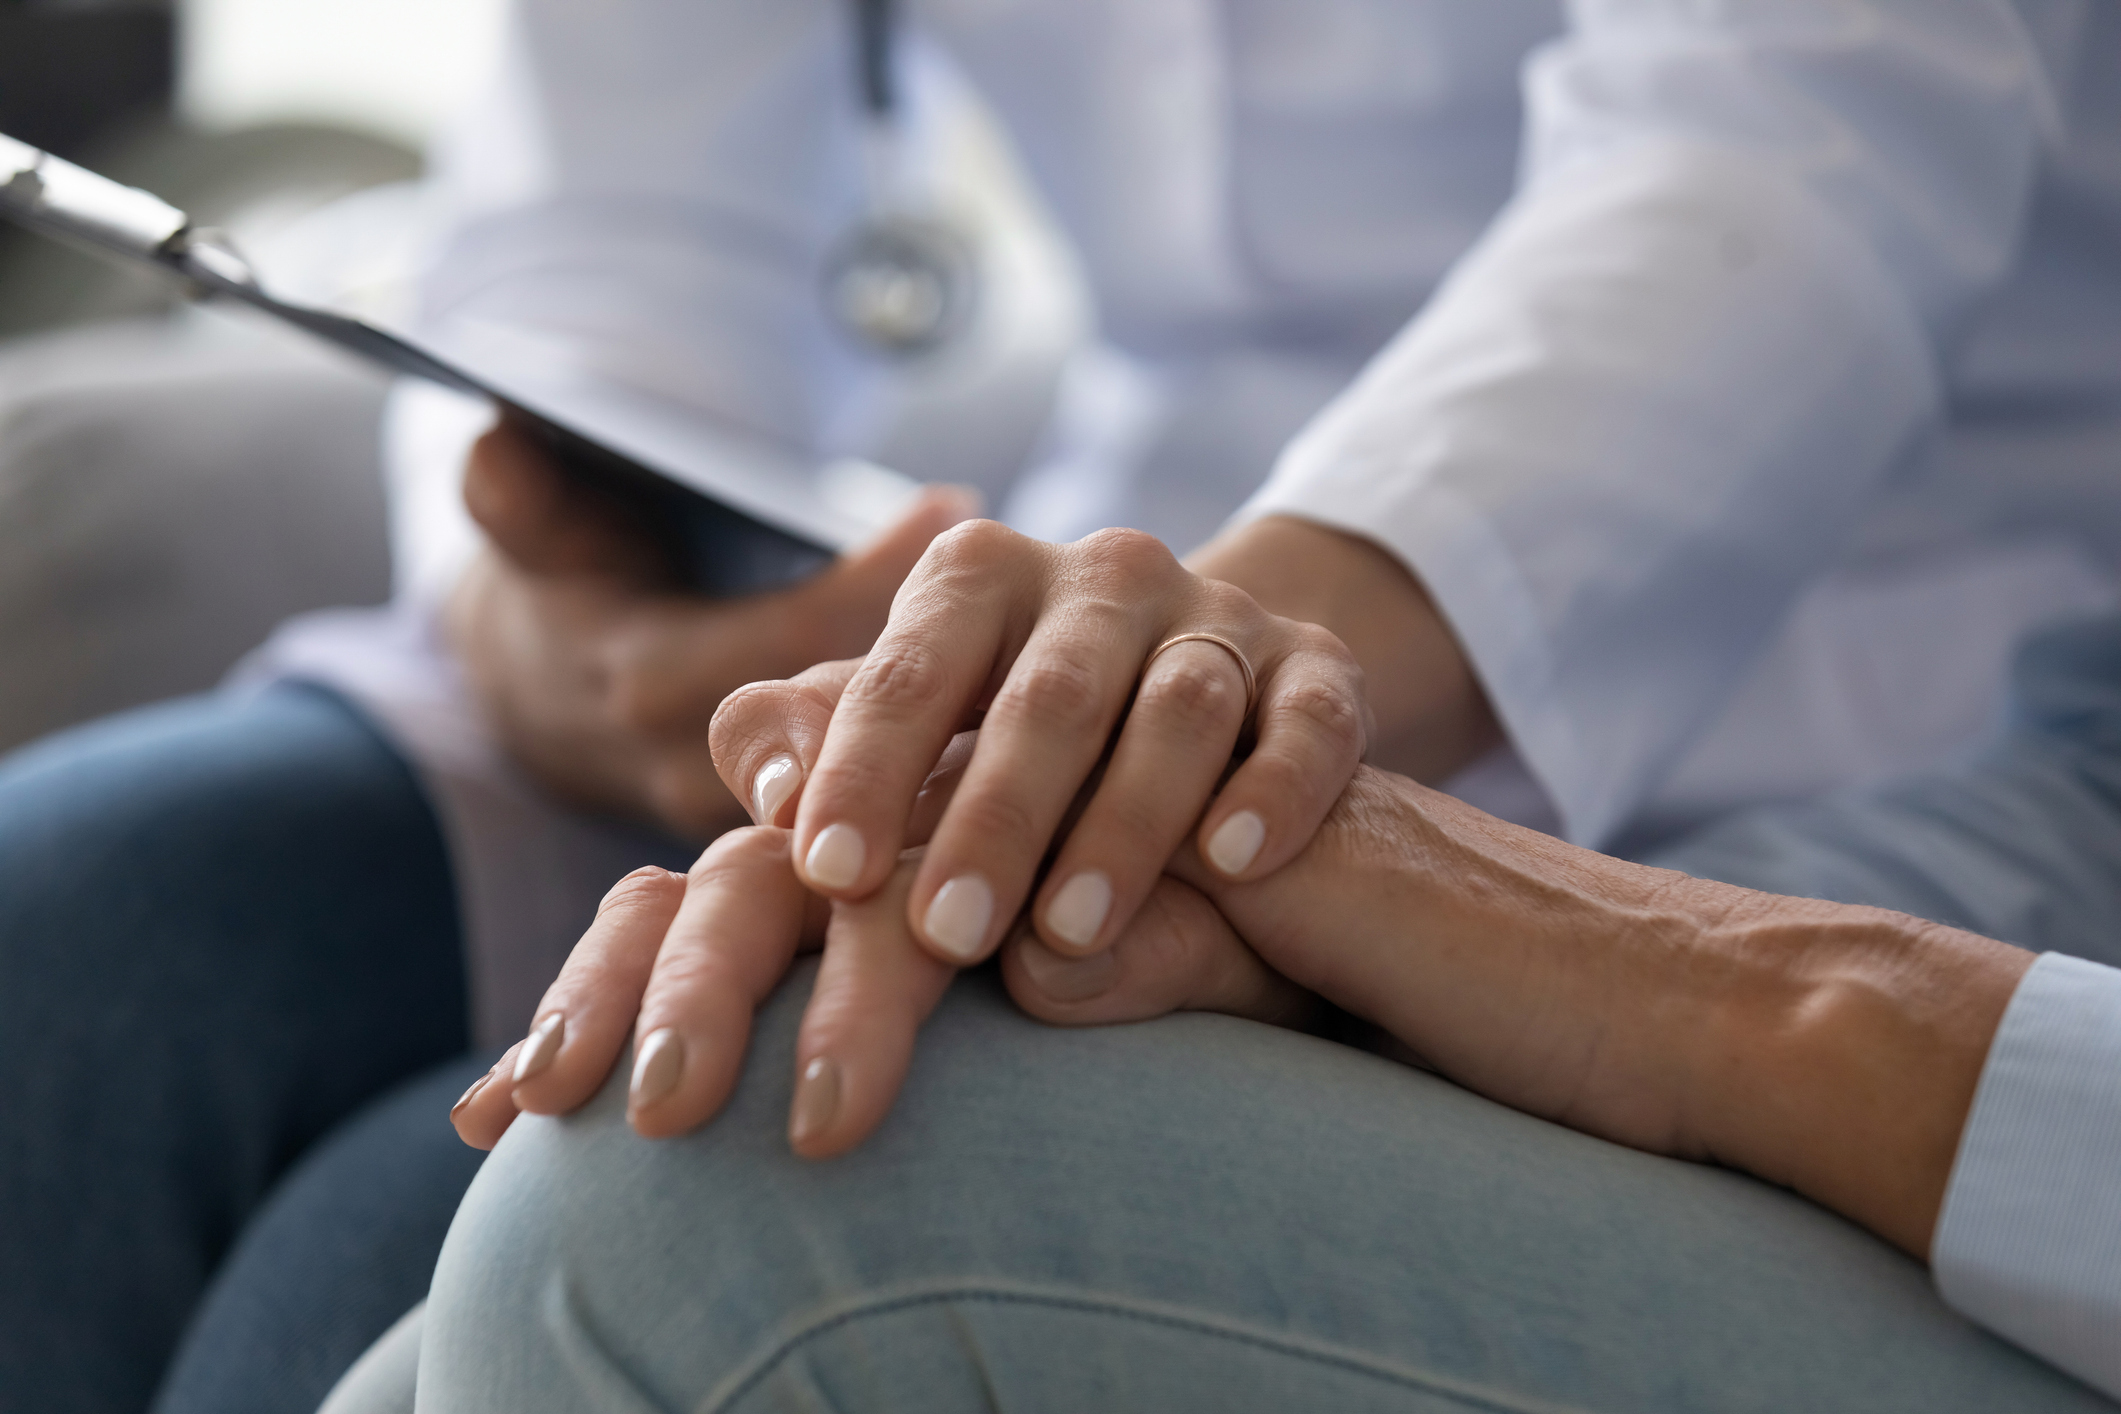 Young woman doctor nurse wear white medical uniform holding hand of senior old female grandmother patient having disease health problem give support help empathy and comfort concept, close up view